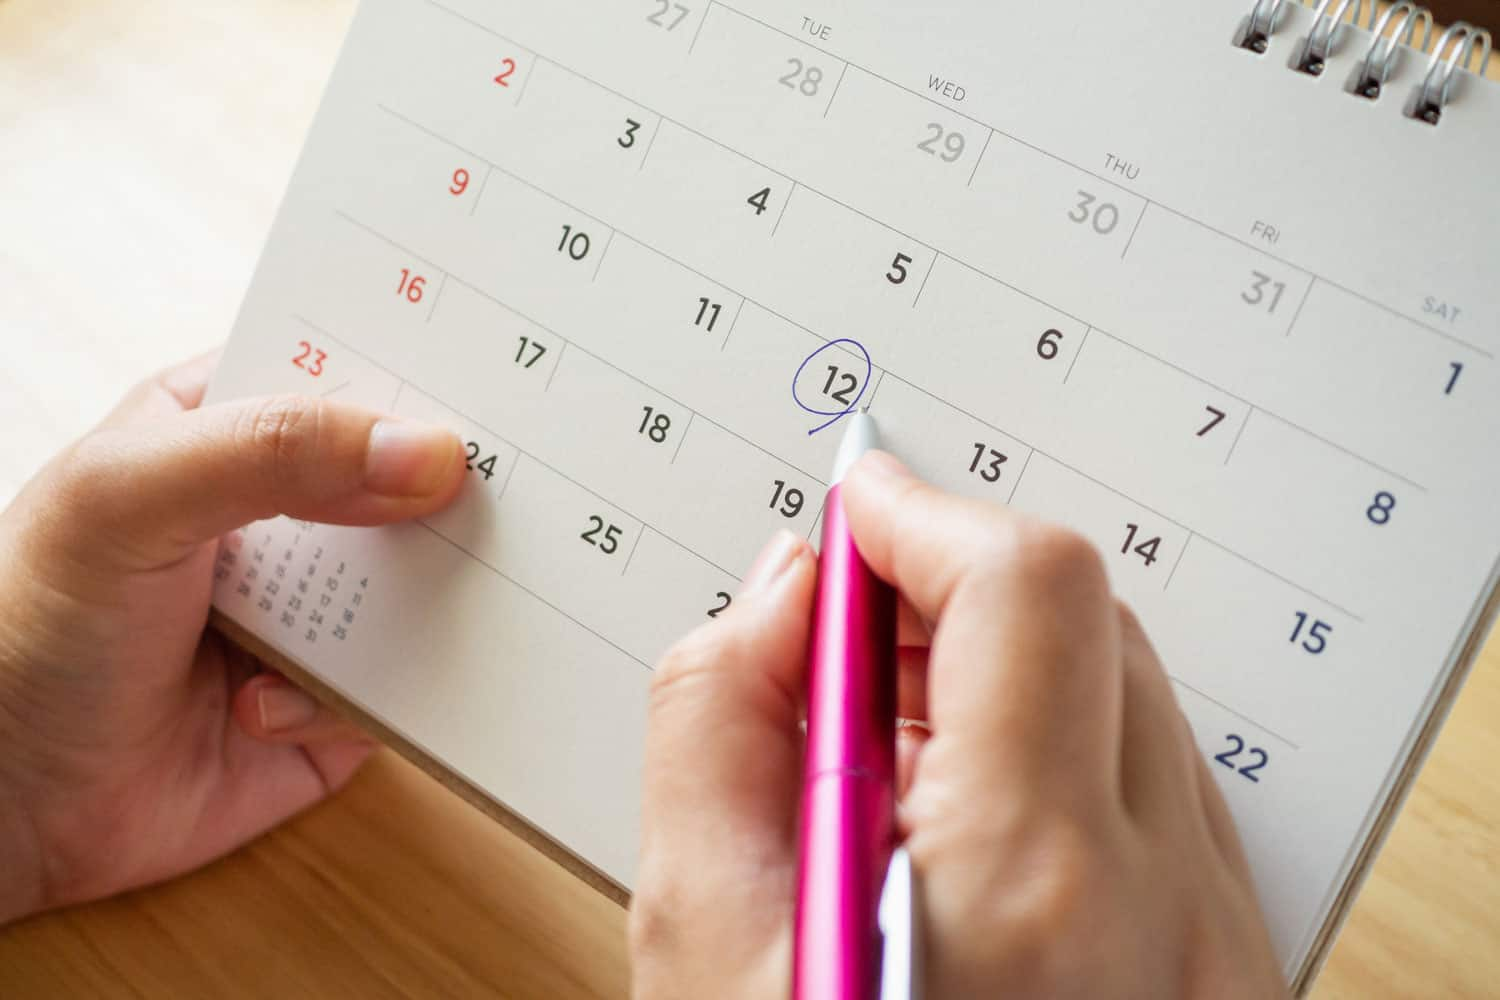 photo of person putting their lease end date in the calendar